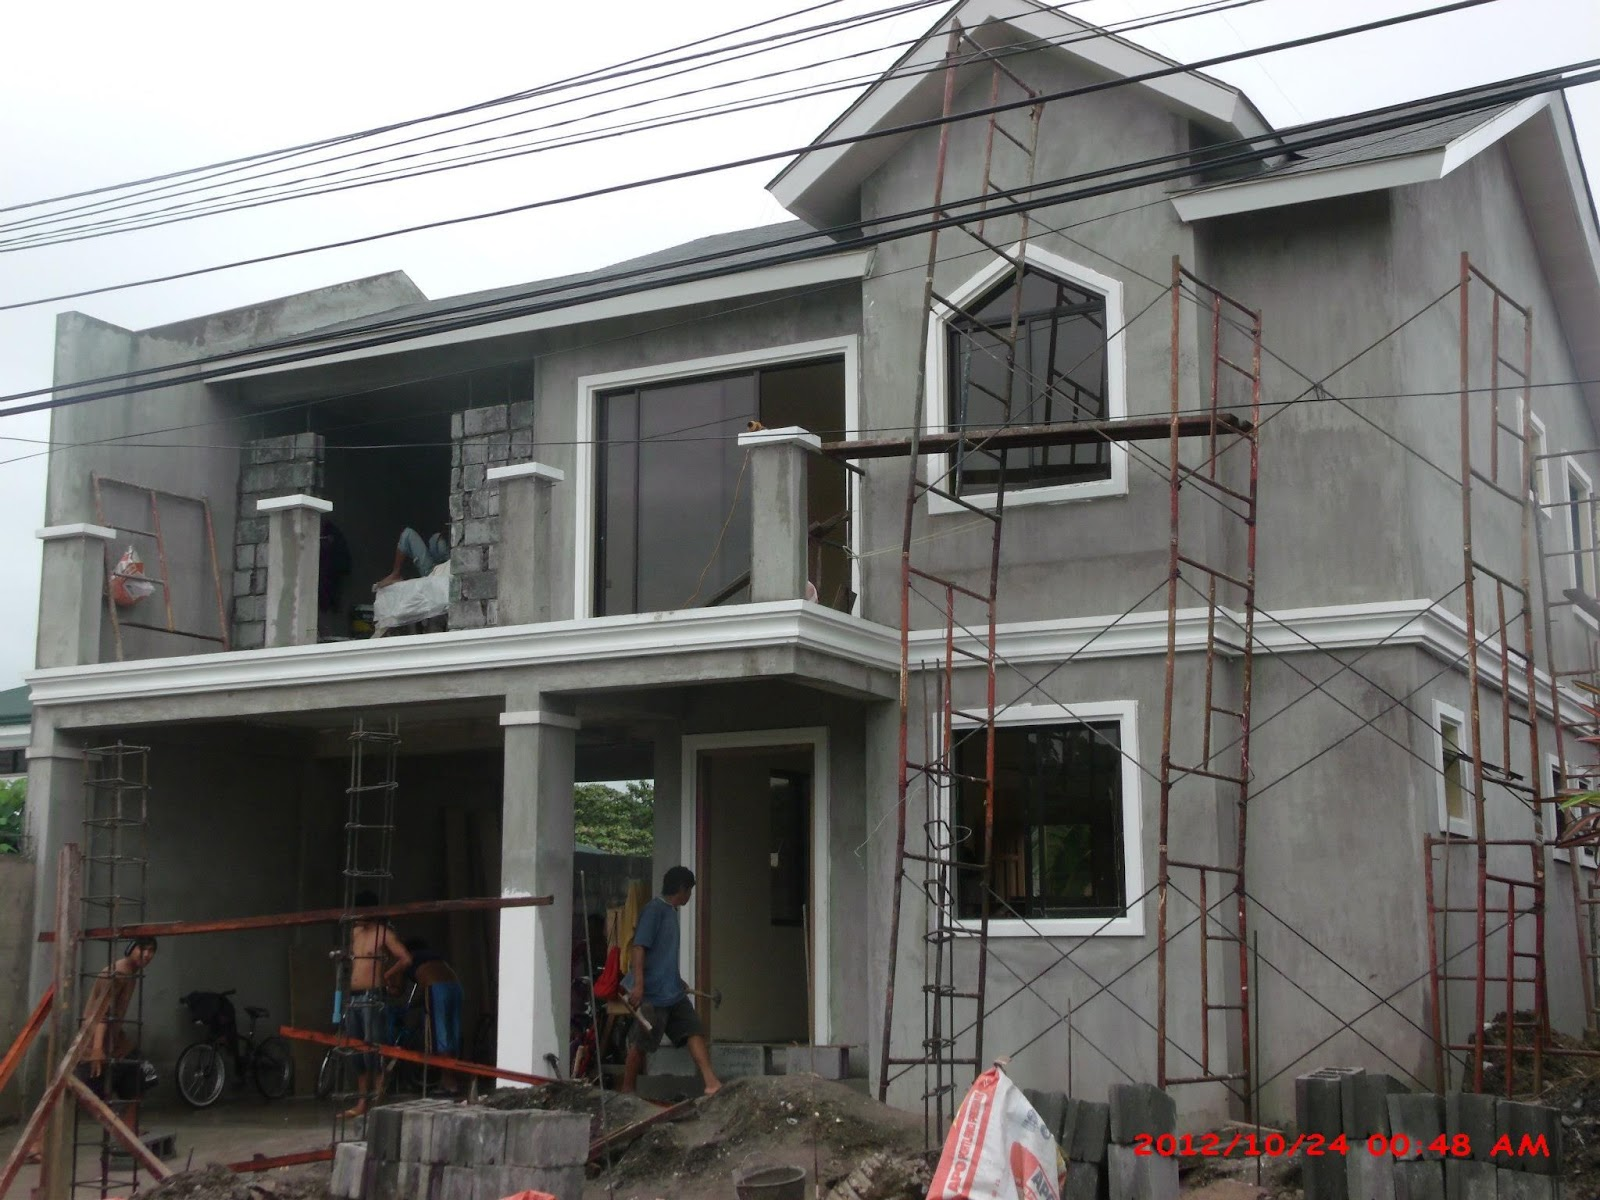 Alta tierra village house construction project in jaro iloilo city philippines phase 3 lb - Home construction designs ...